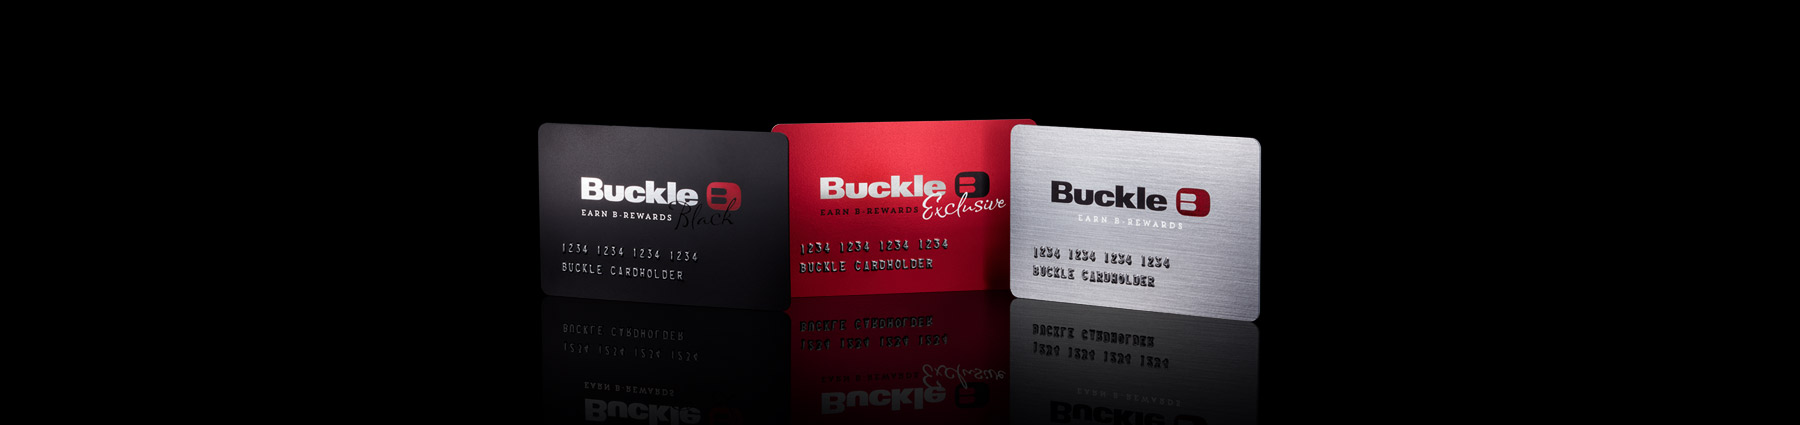 Buckle Black Card